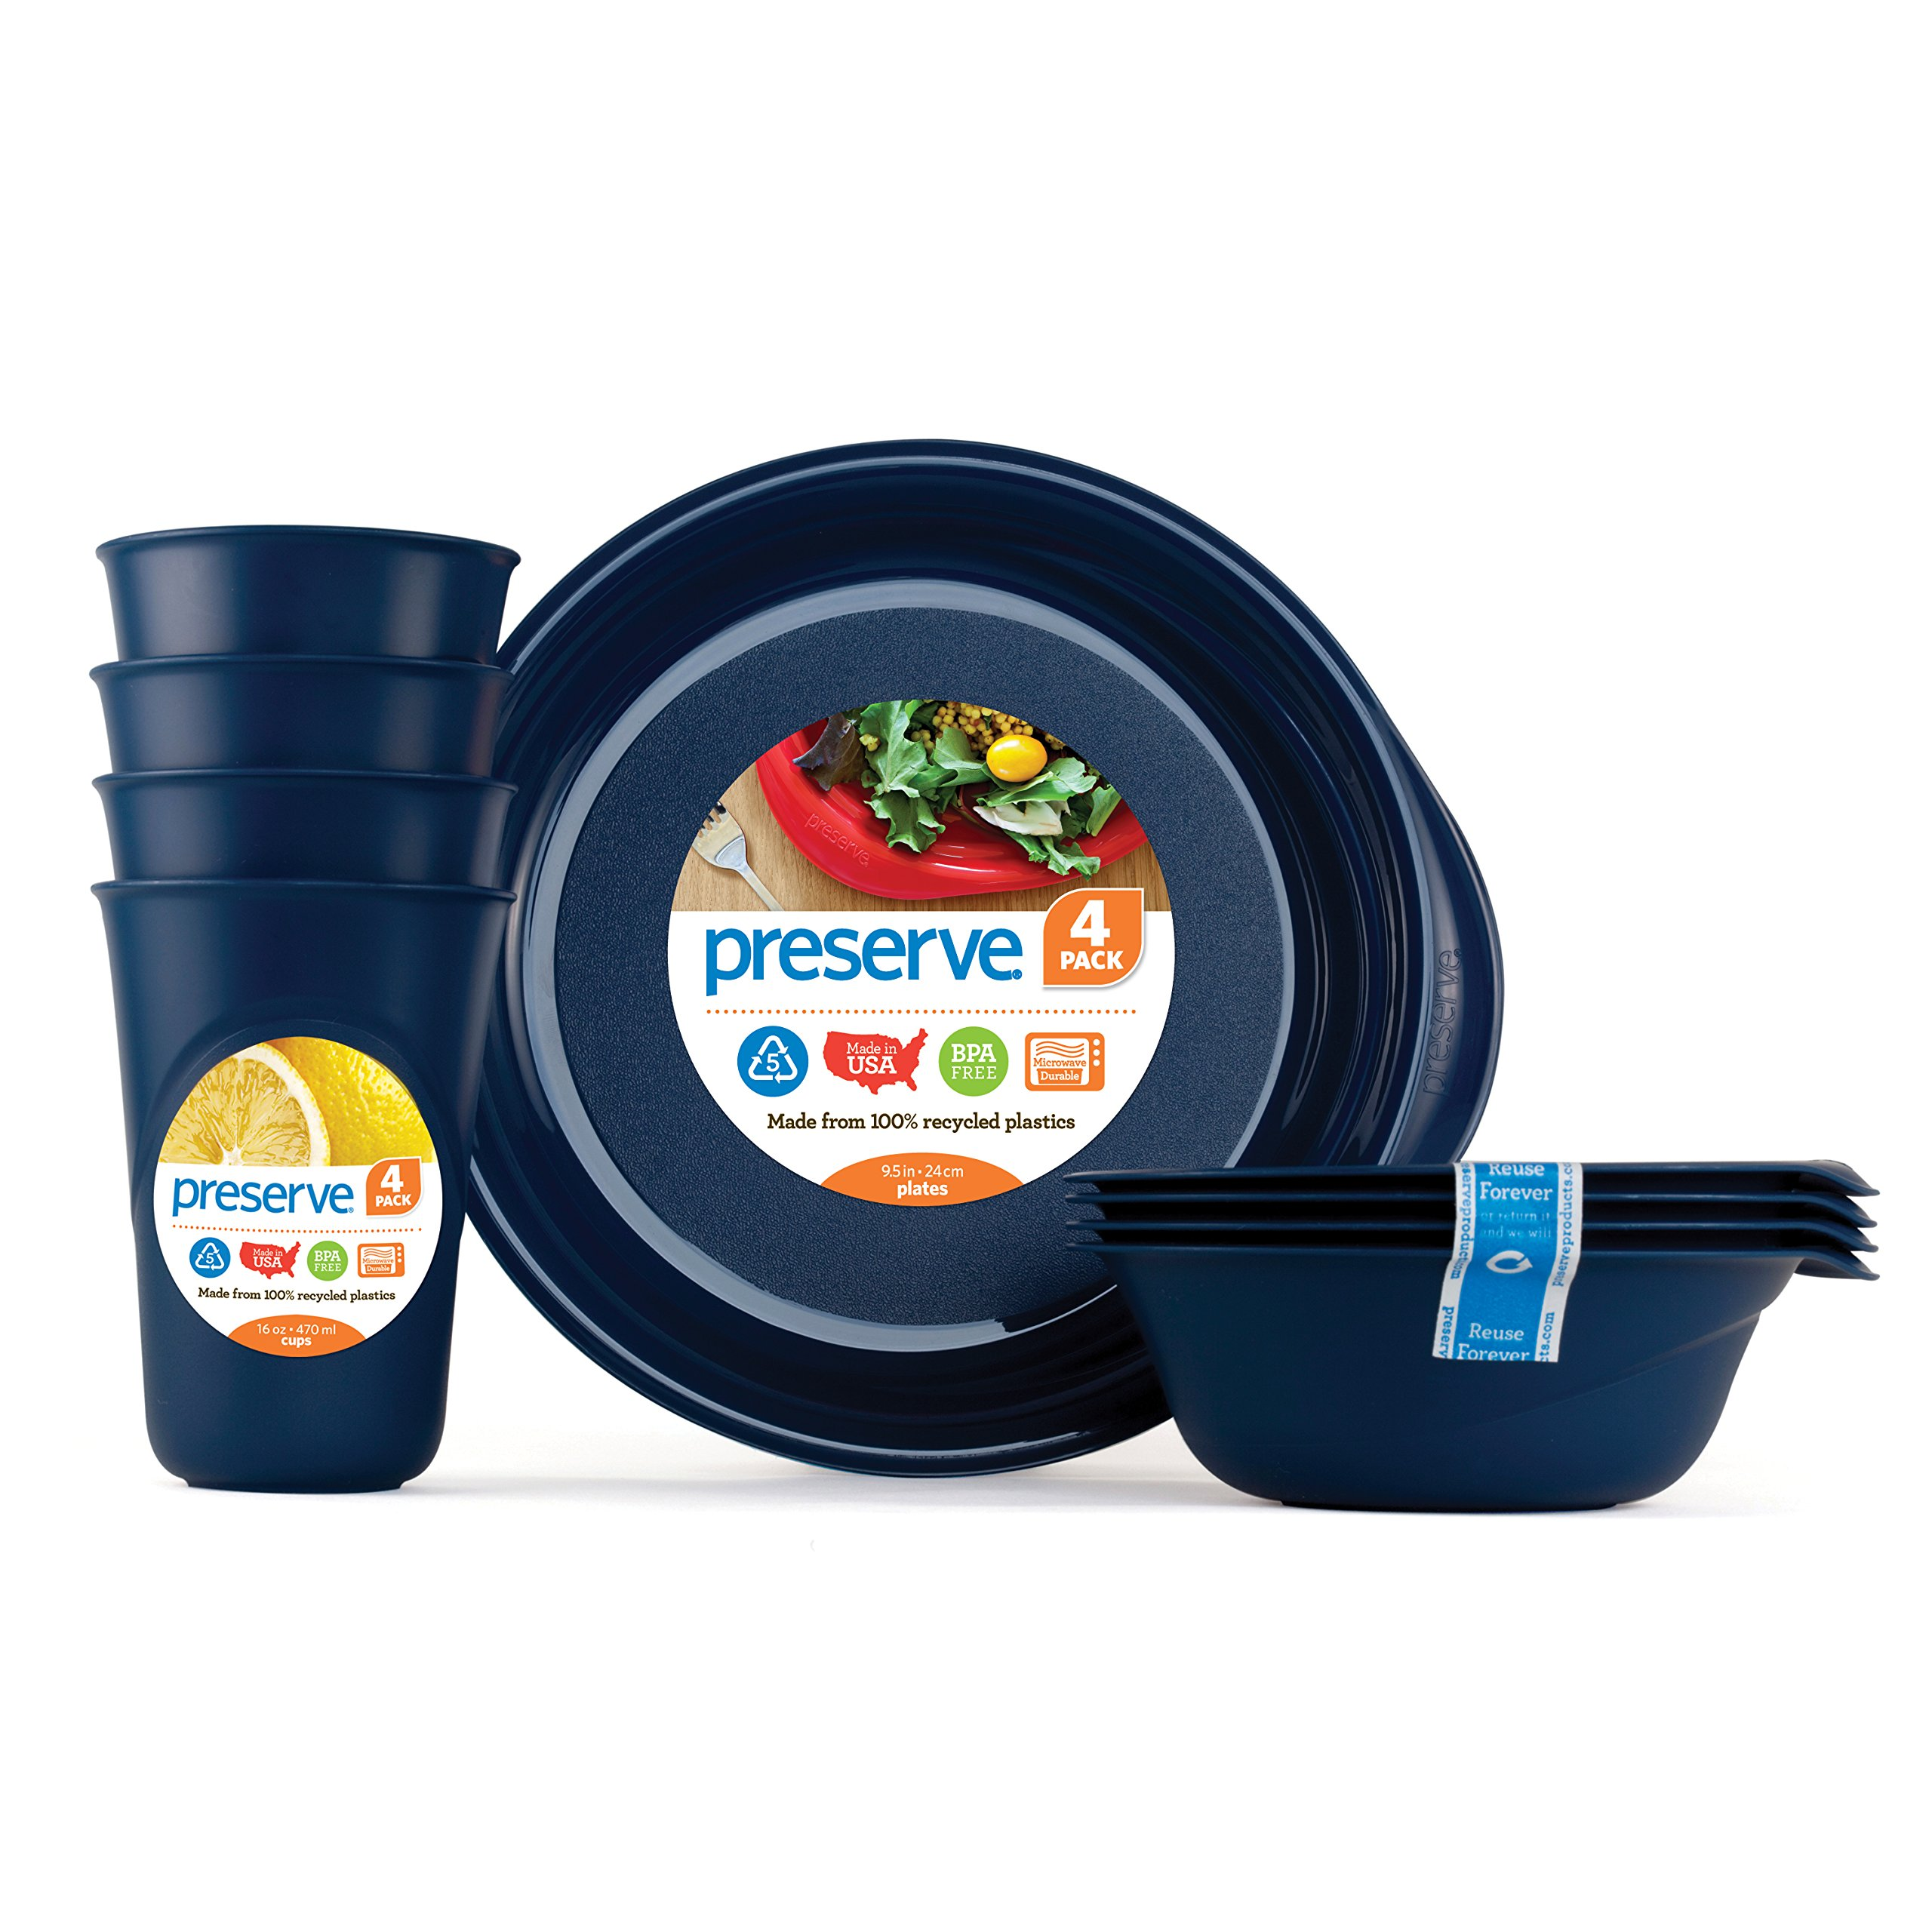 Preserve Everyday Tableware Set: Four Plates, Four Bowls and Four Cups, Midnight Blue